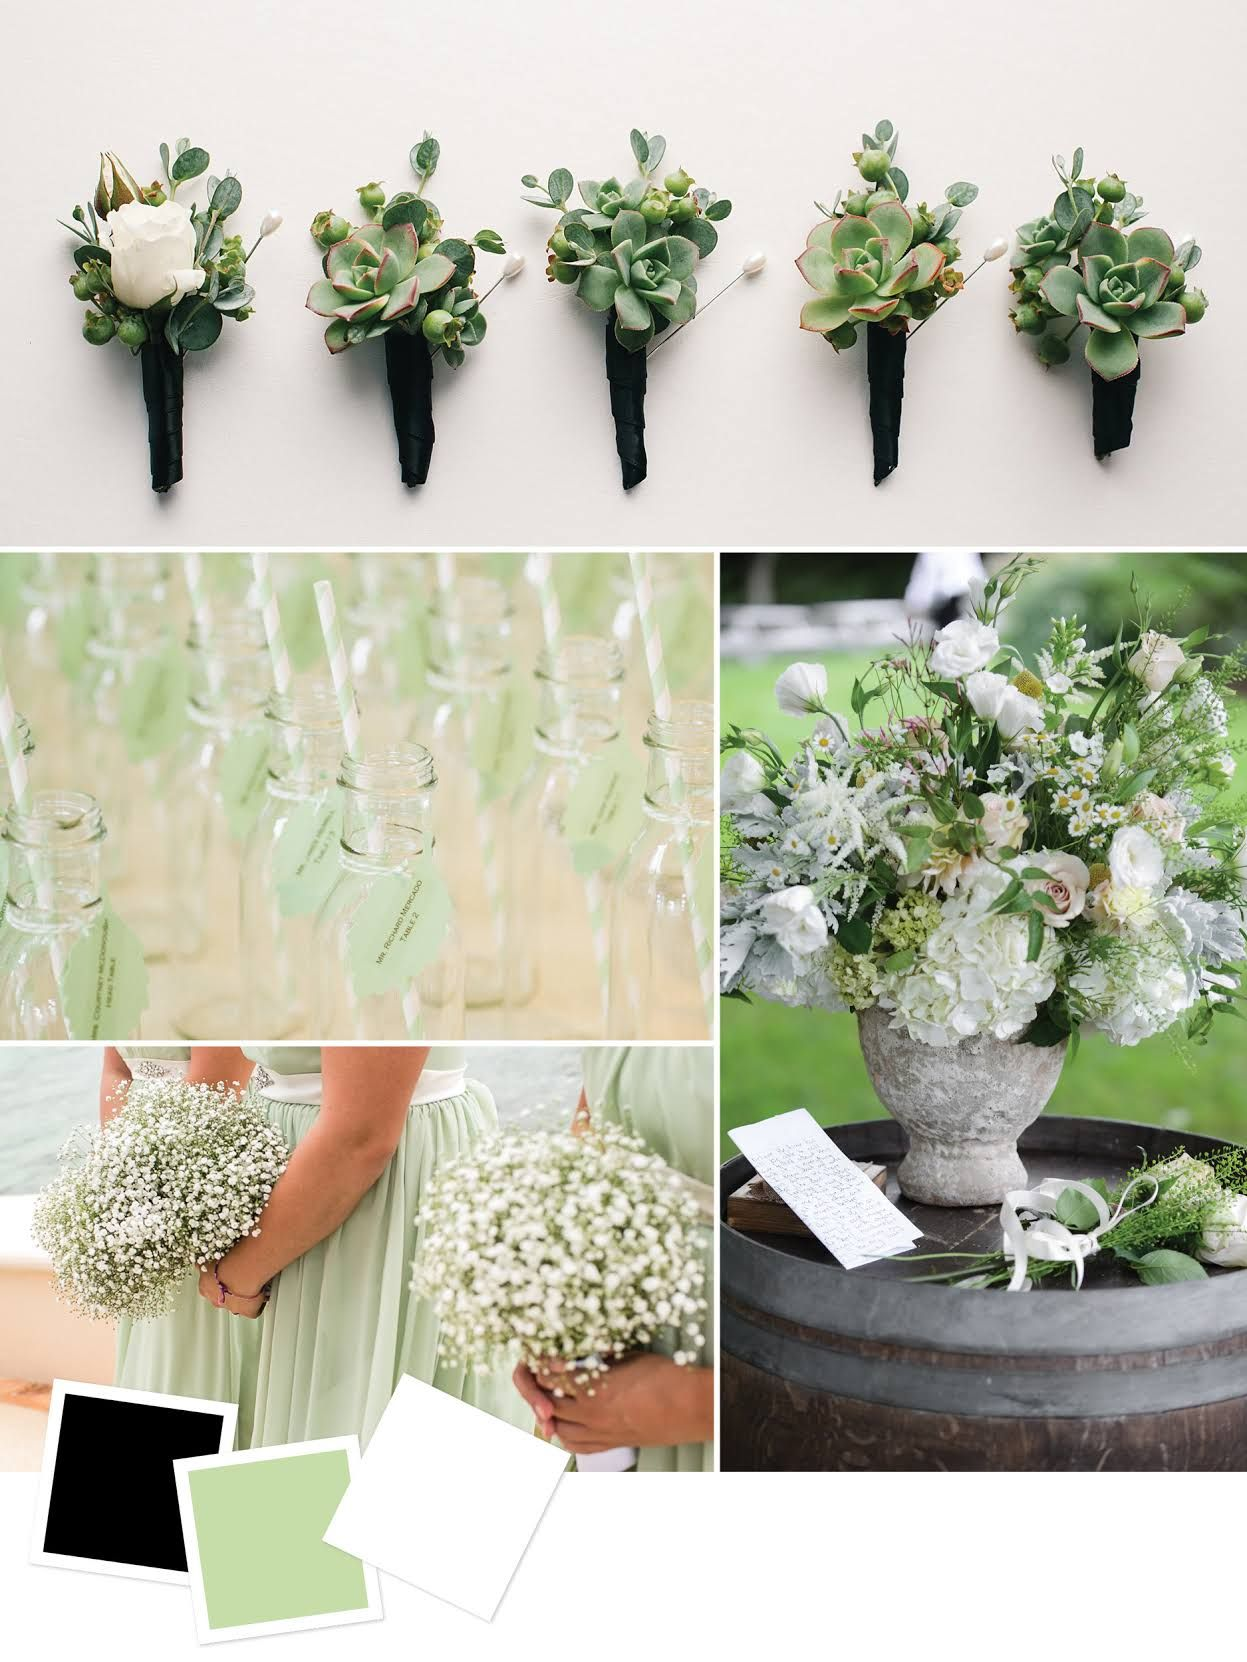 Black + Pale Green + White Good for: Formal spring wedding themes ...